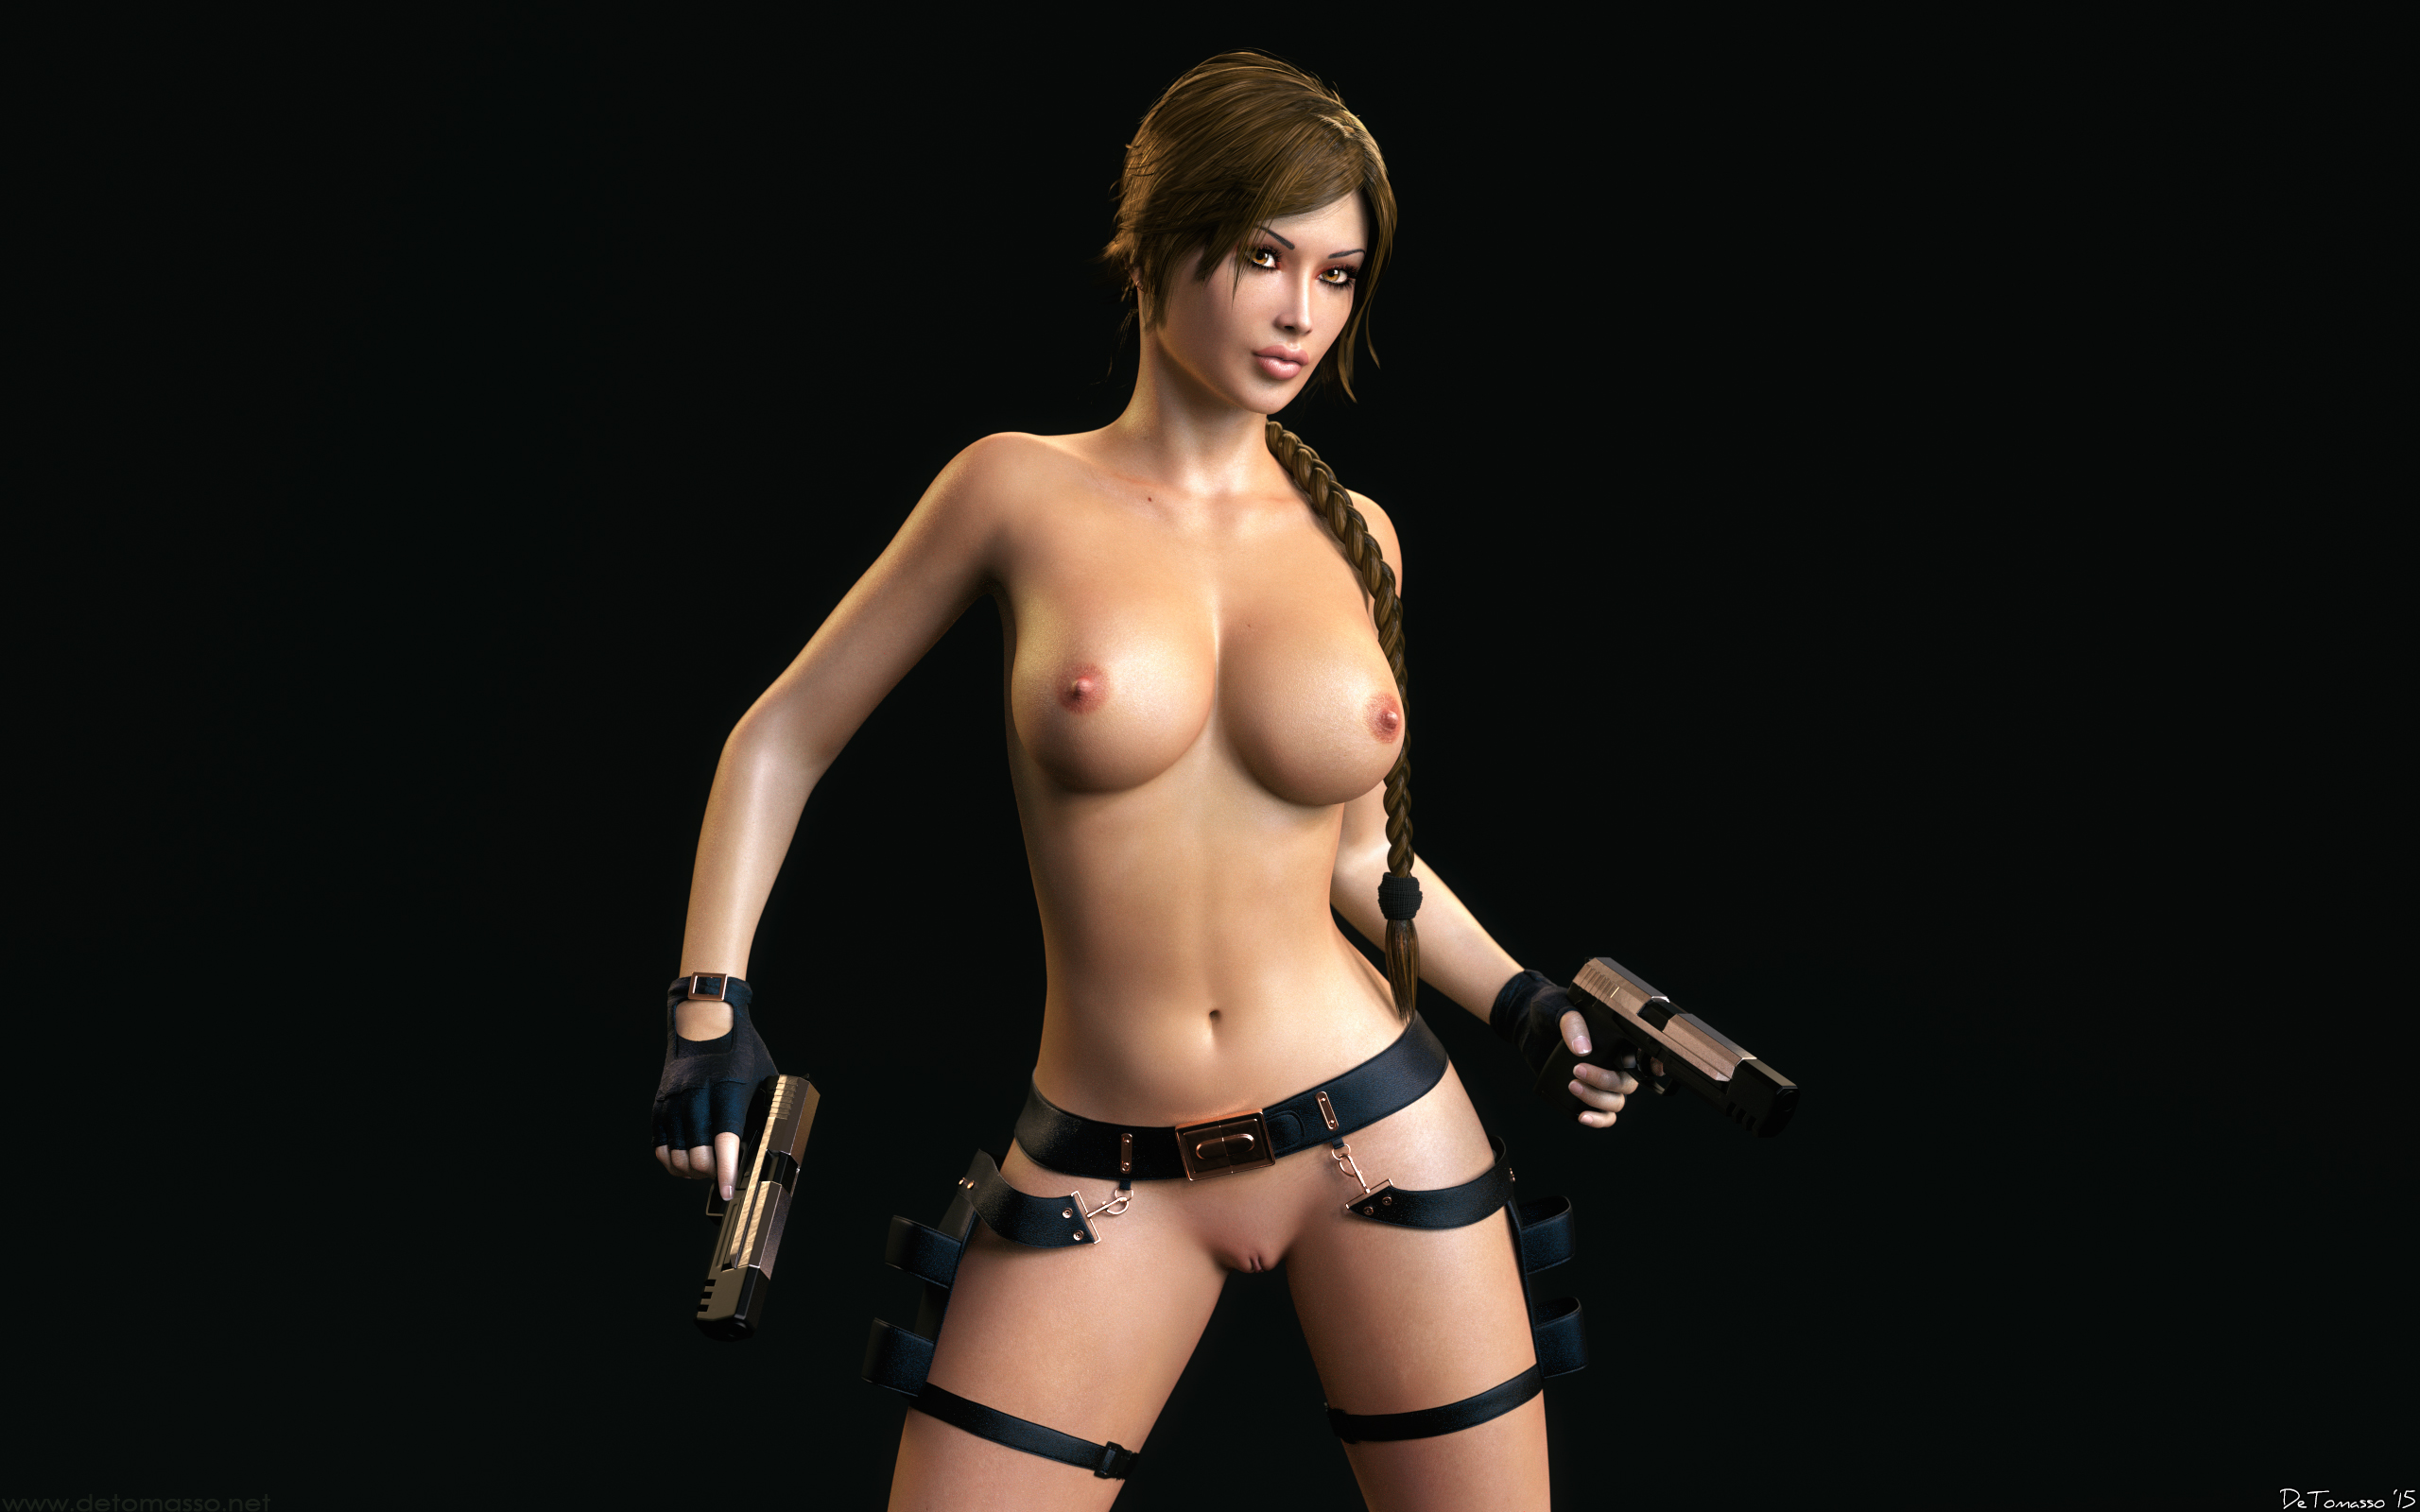 Lara croft naked video hentai galleries